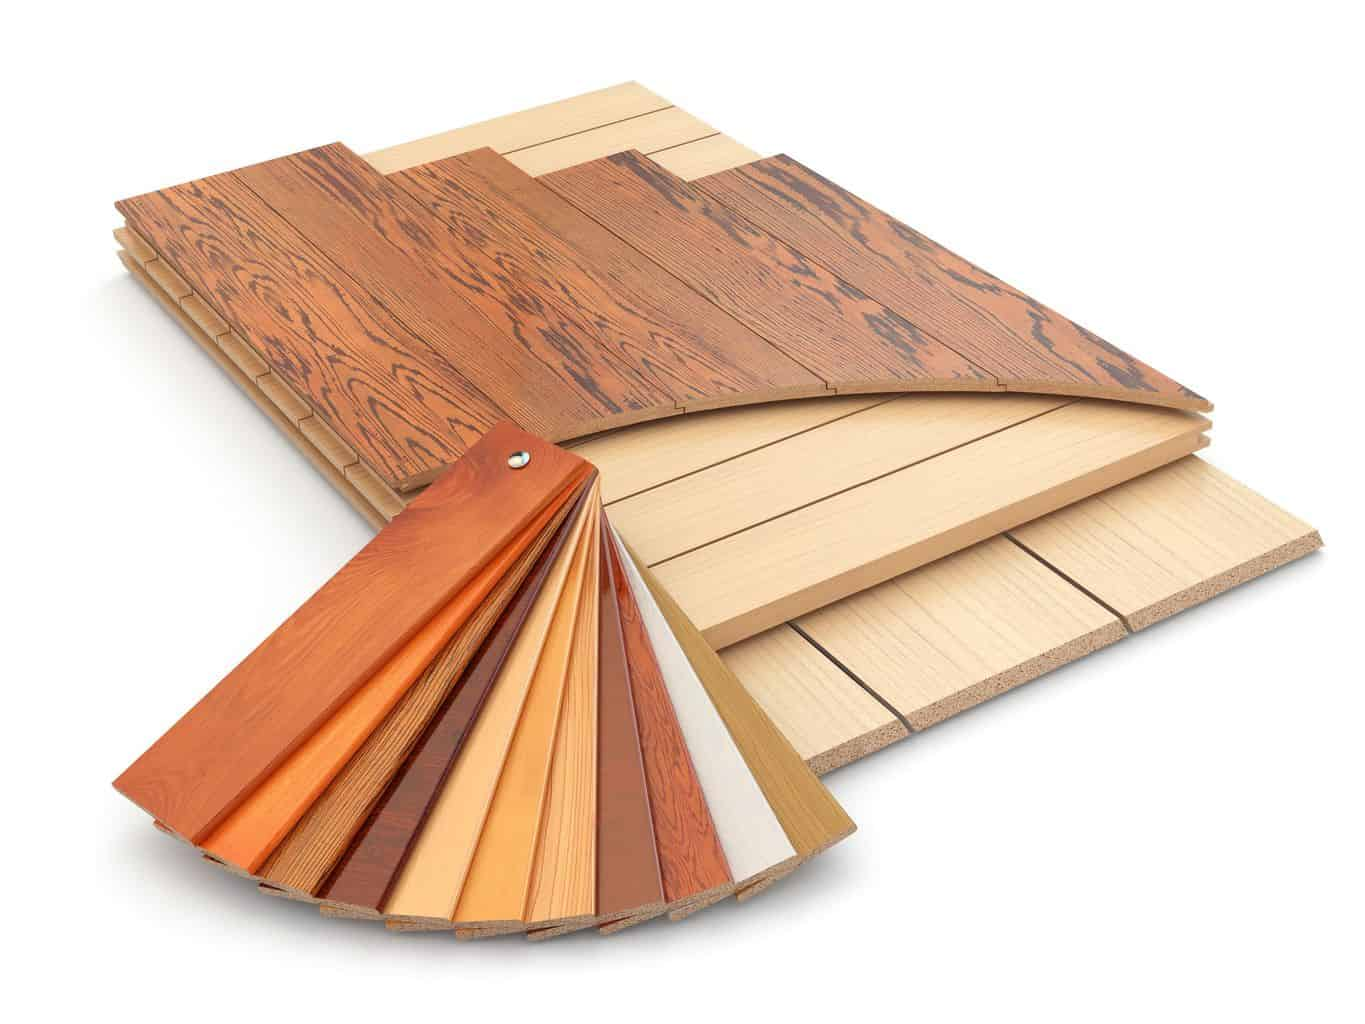 Now You May Still Want To Choose Laminate And That S Fine But Choosing Engineered Hardwood Means Are A Floor Looks Feels Much More